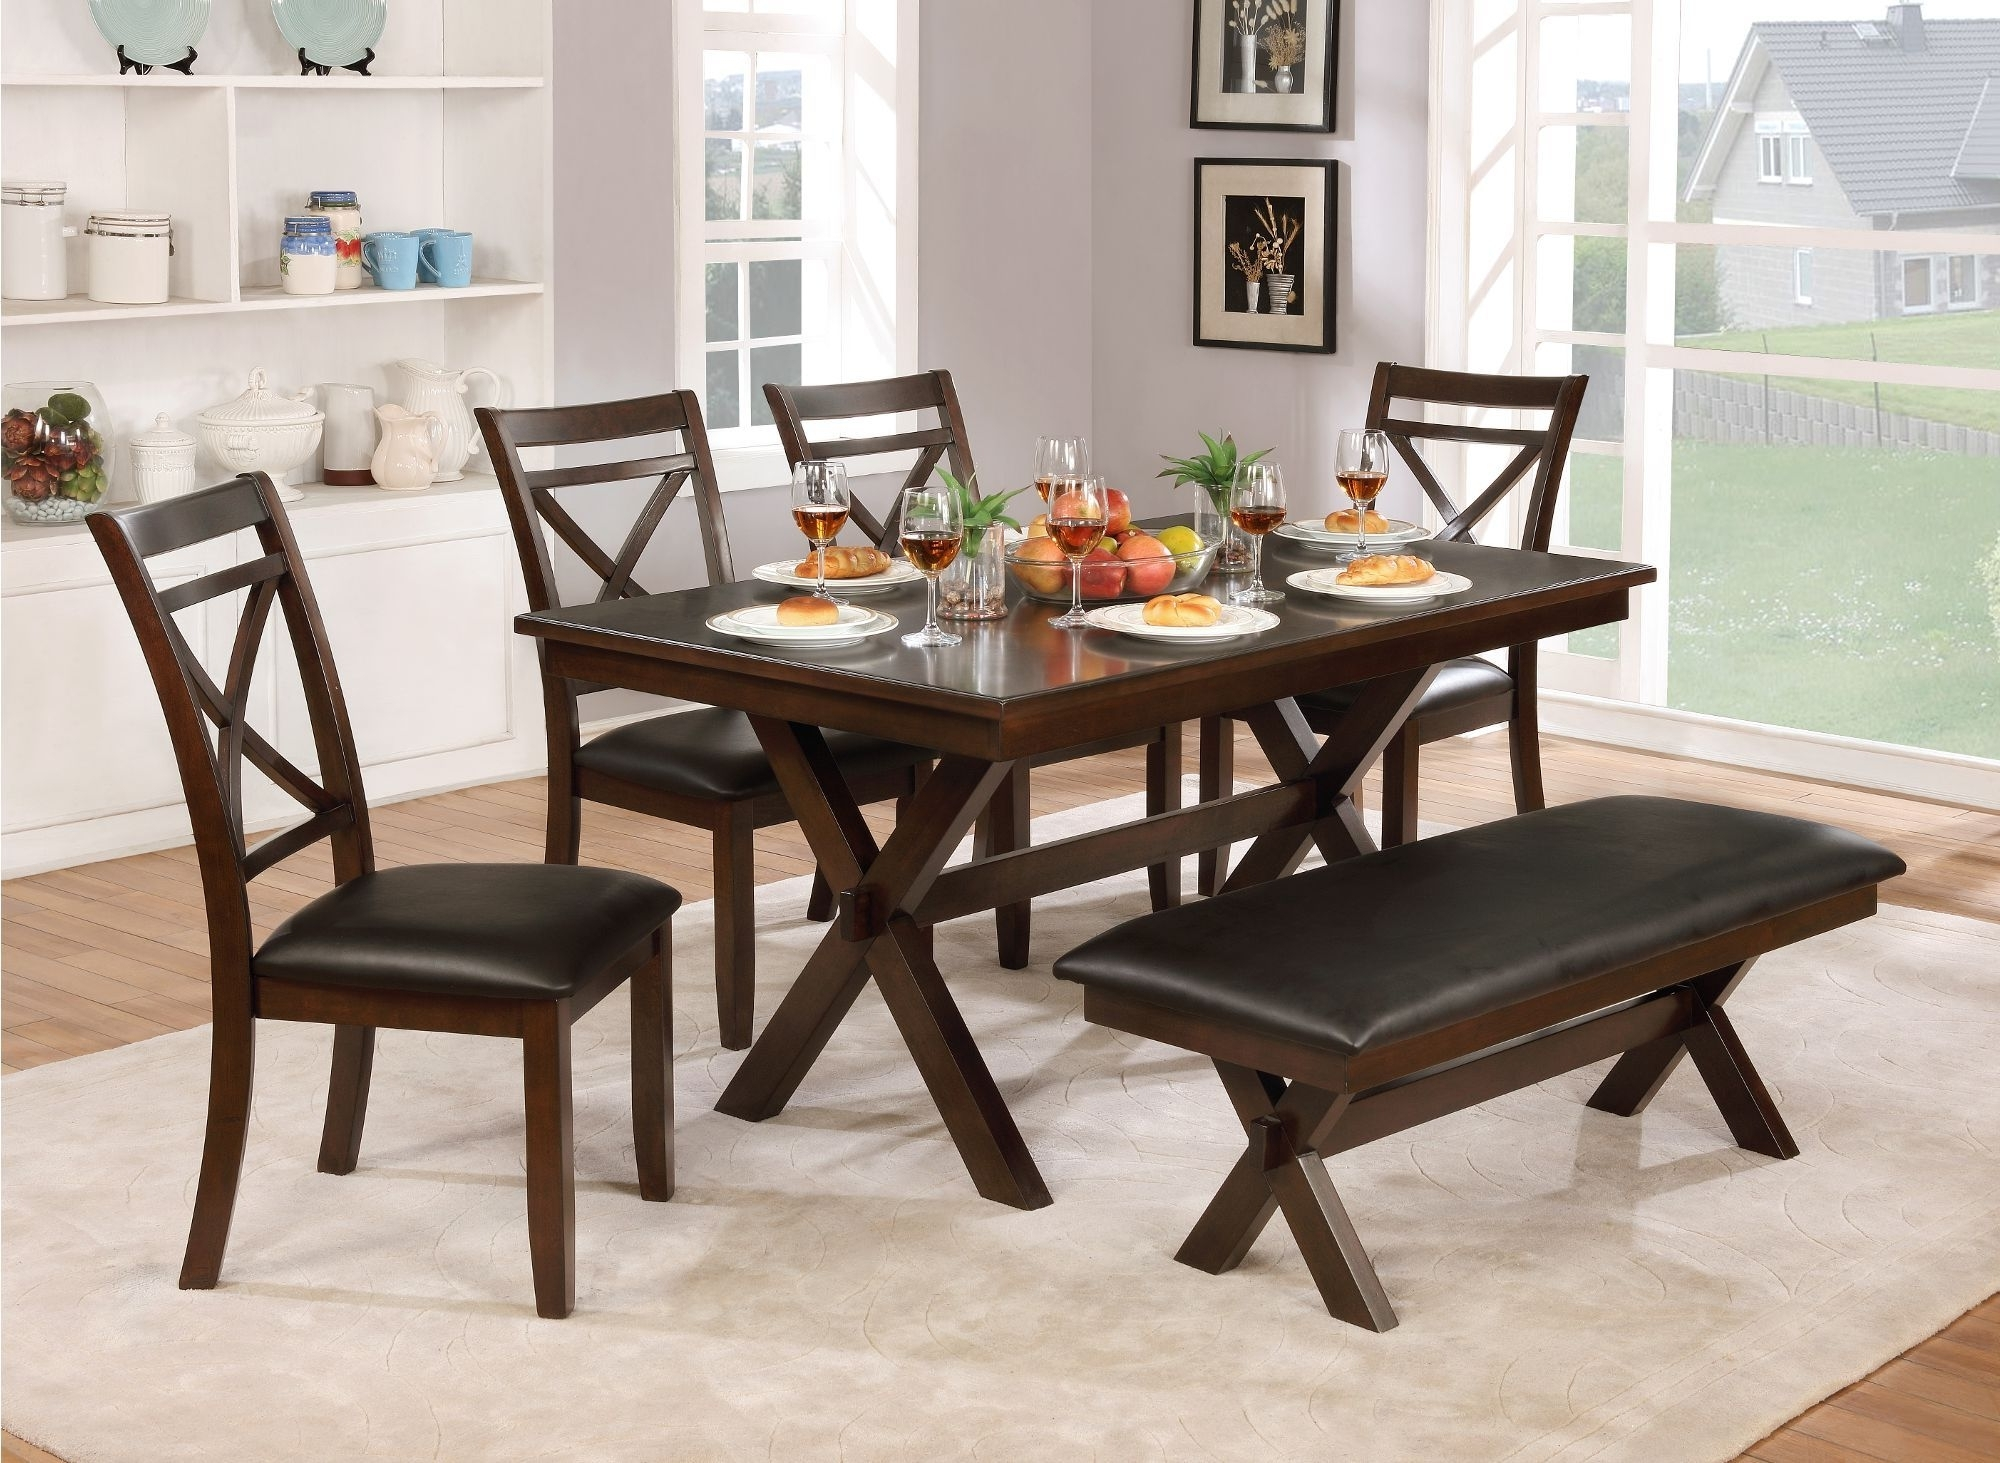 Caden 6 Piece Dining Sets With Upholstered Side Chair Within Most Current Clearance Dark Cherry Transitional 6 Piece Dining Set With Bench (Gallery 12 of 25)